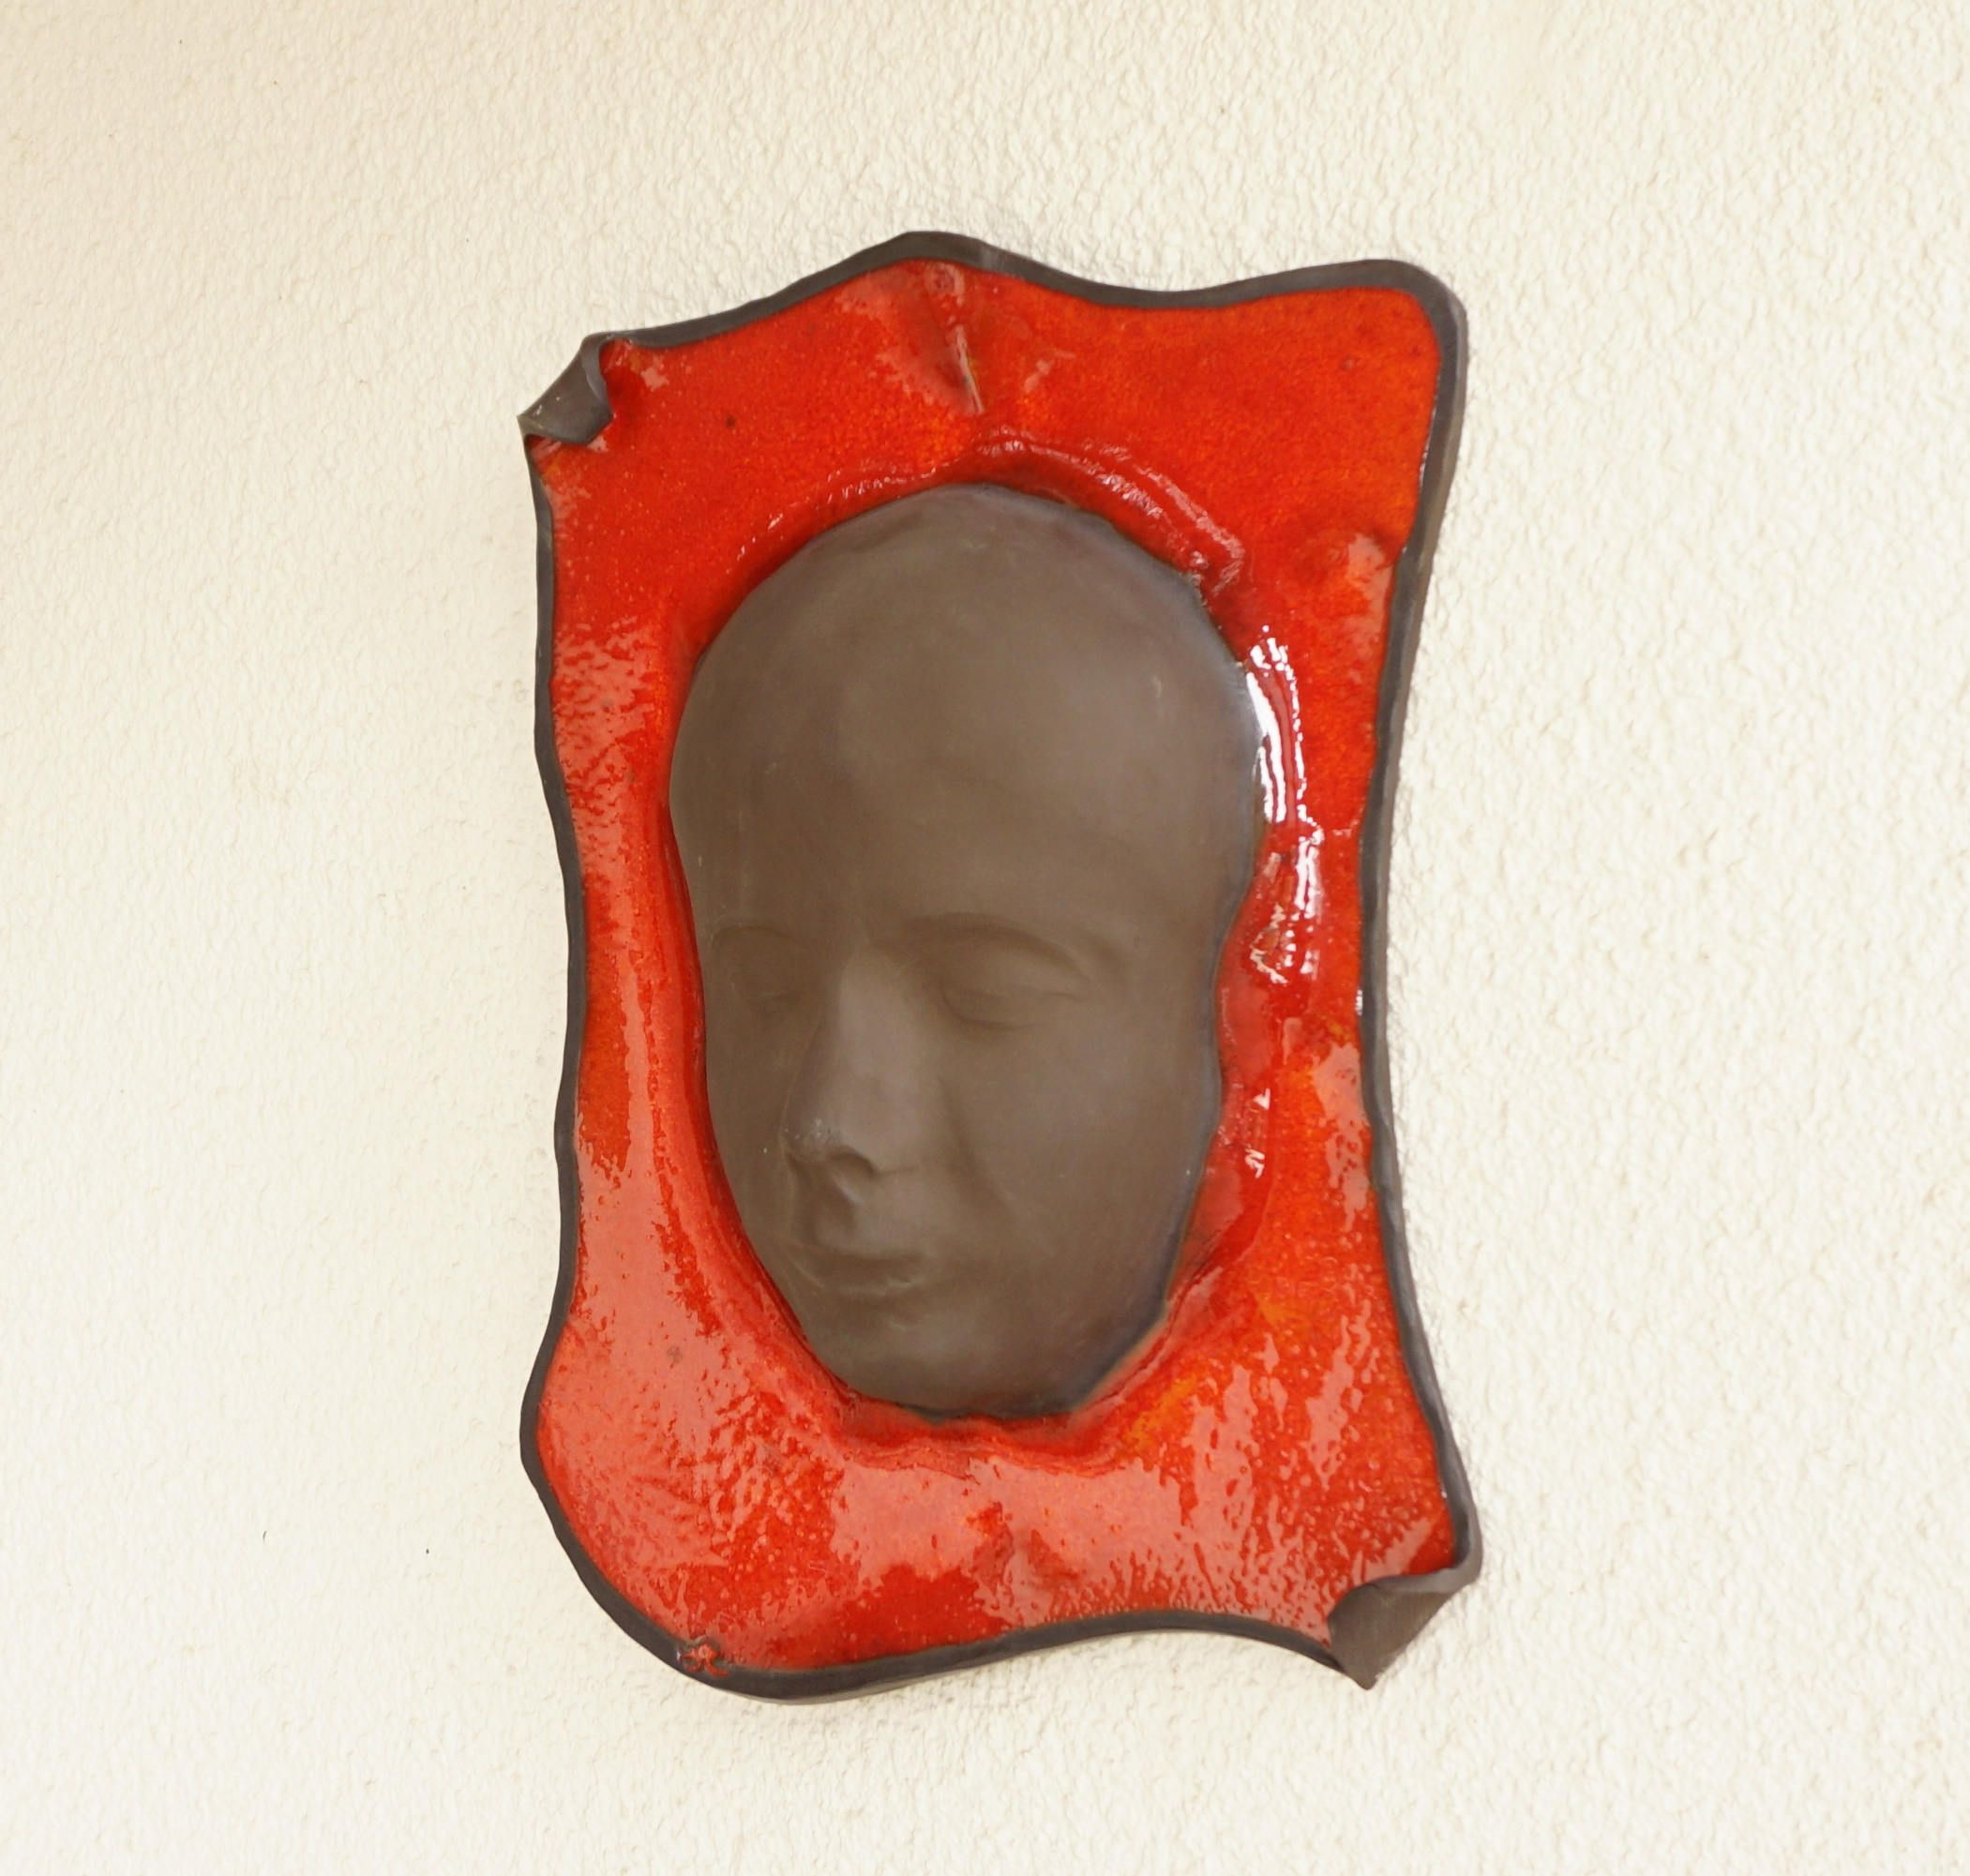 08549478373f Ceramic wall mask